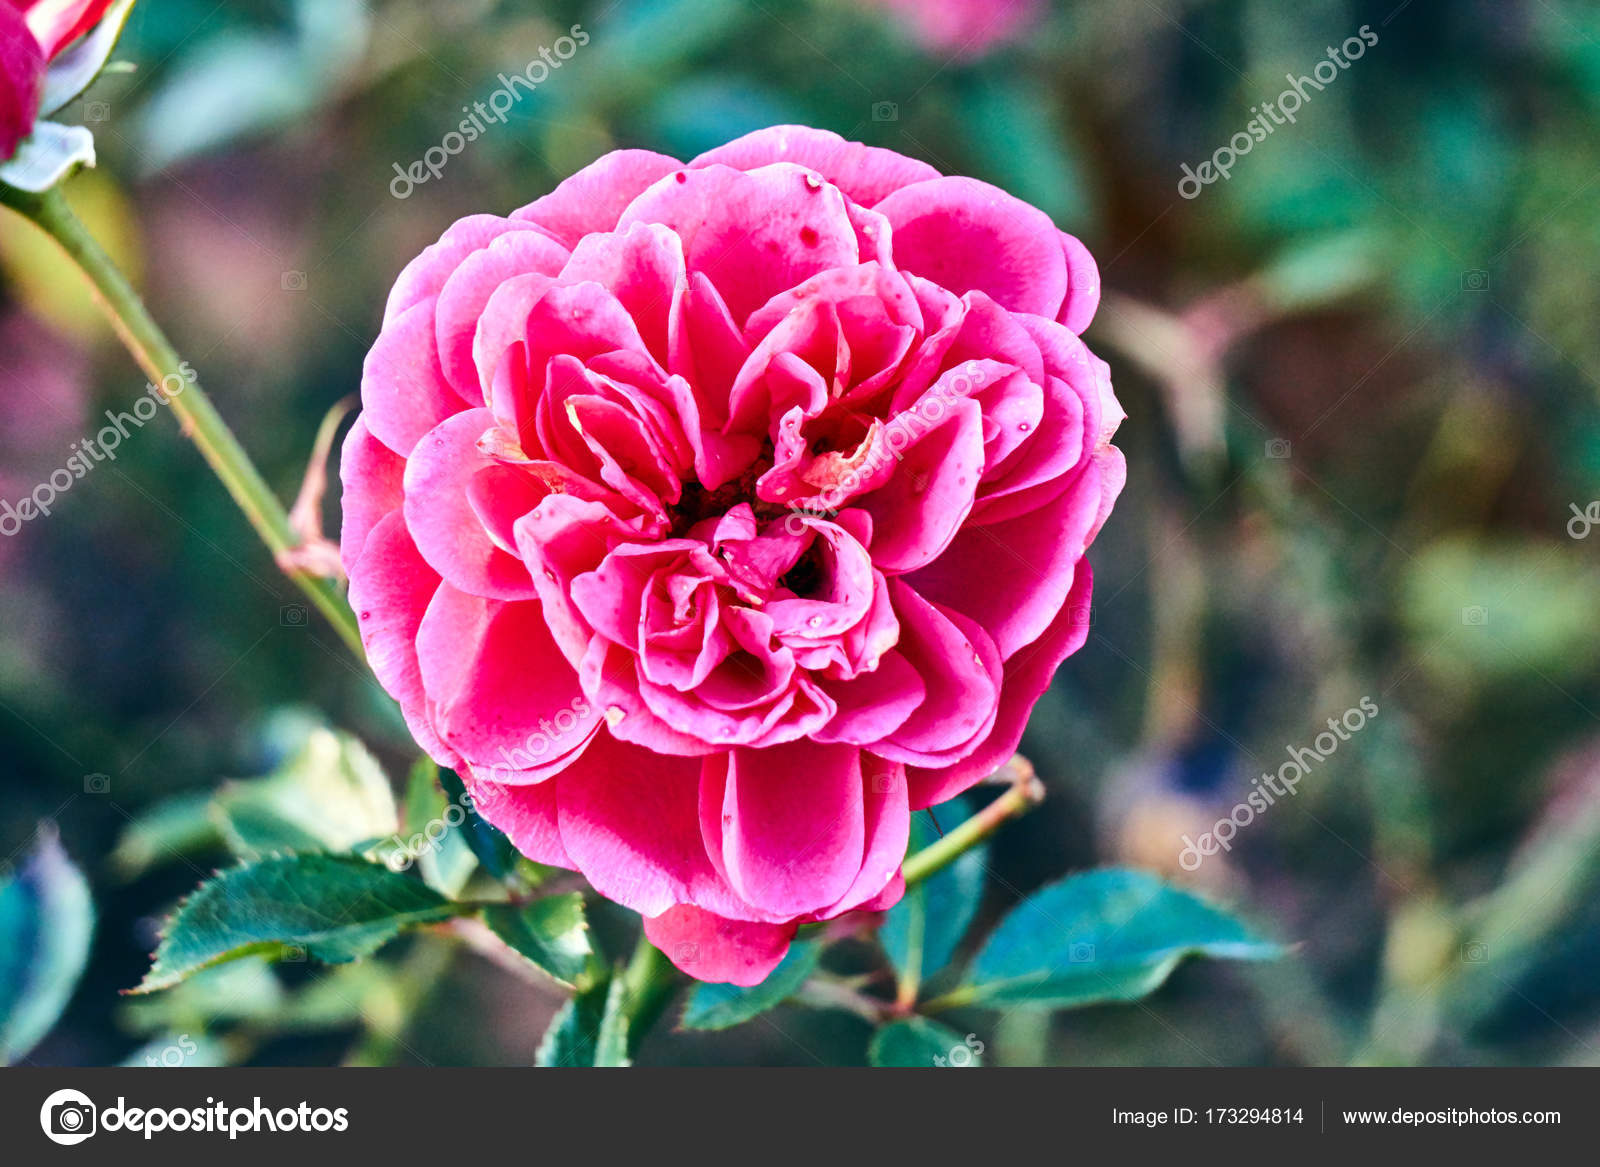 Beautiful pink rose flower garden autumn stock photo gkordus beautiful pink rose flower garden autumn stock photo izmirmasajfo